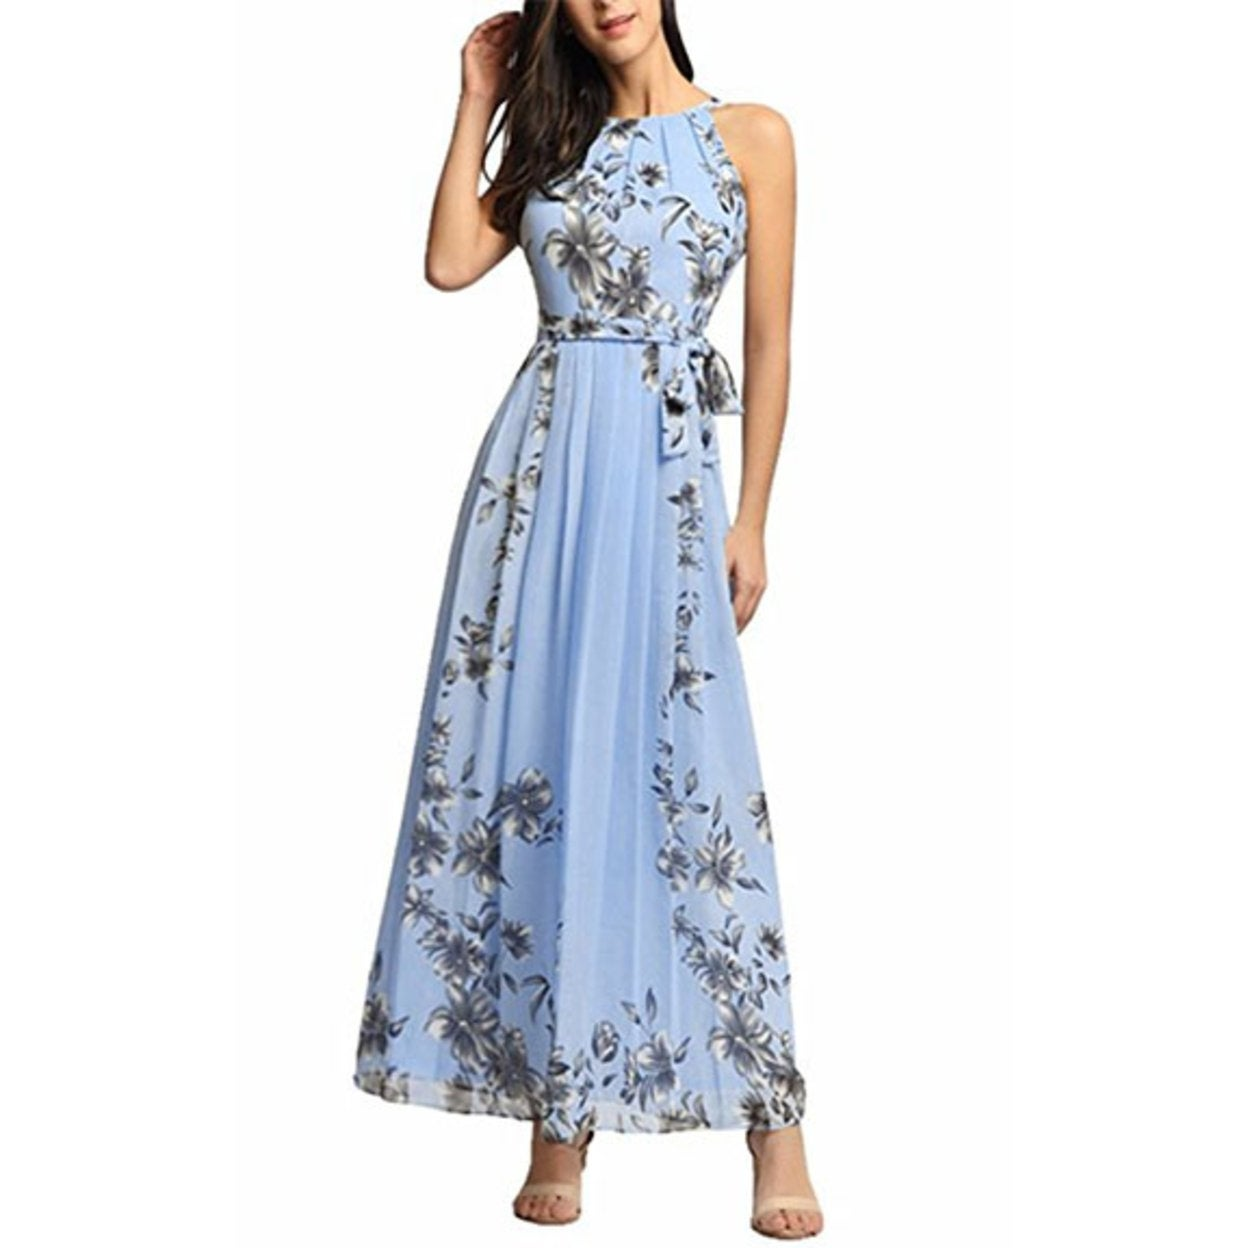 87cf81ade184c Size 2XL Women's Clothing | Shop our Best Clothing & Shoes Deals Online at  Overstock